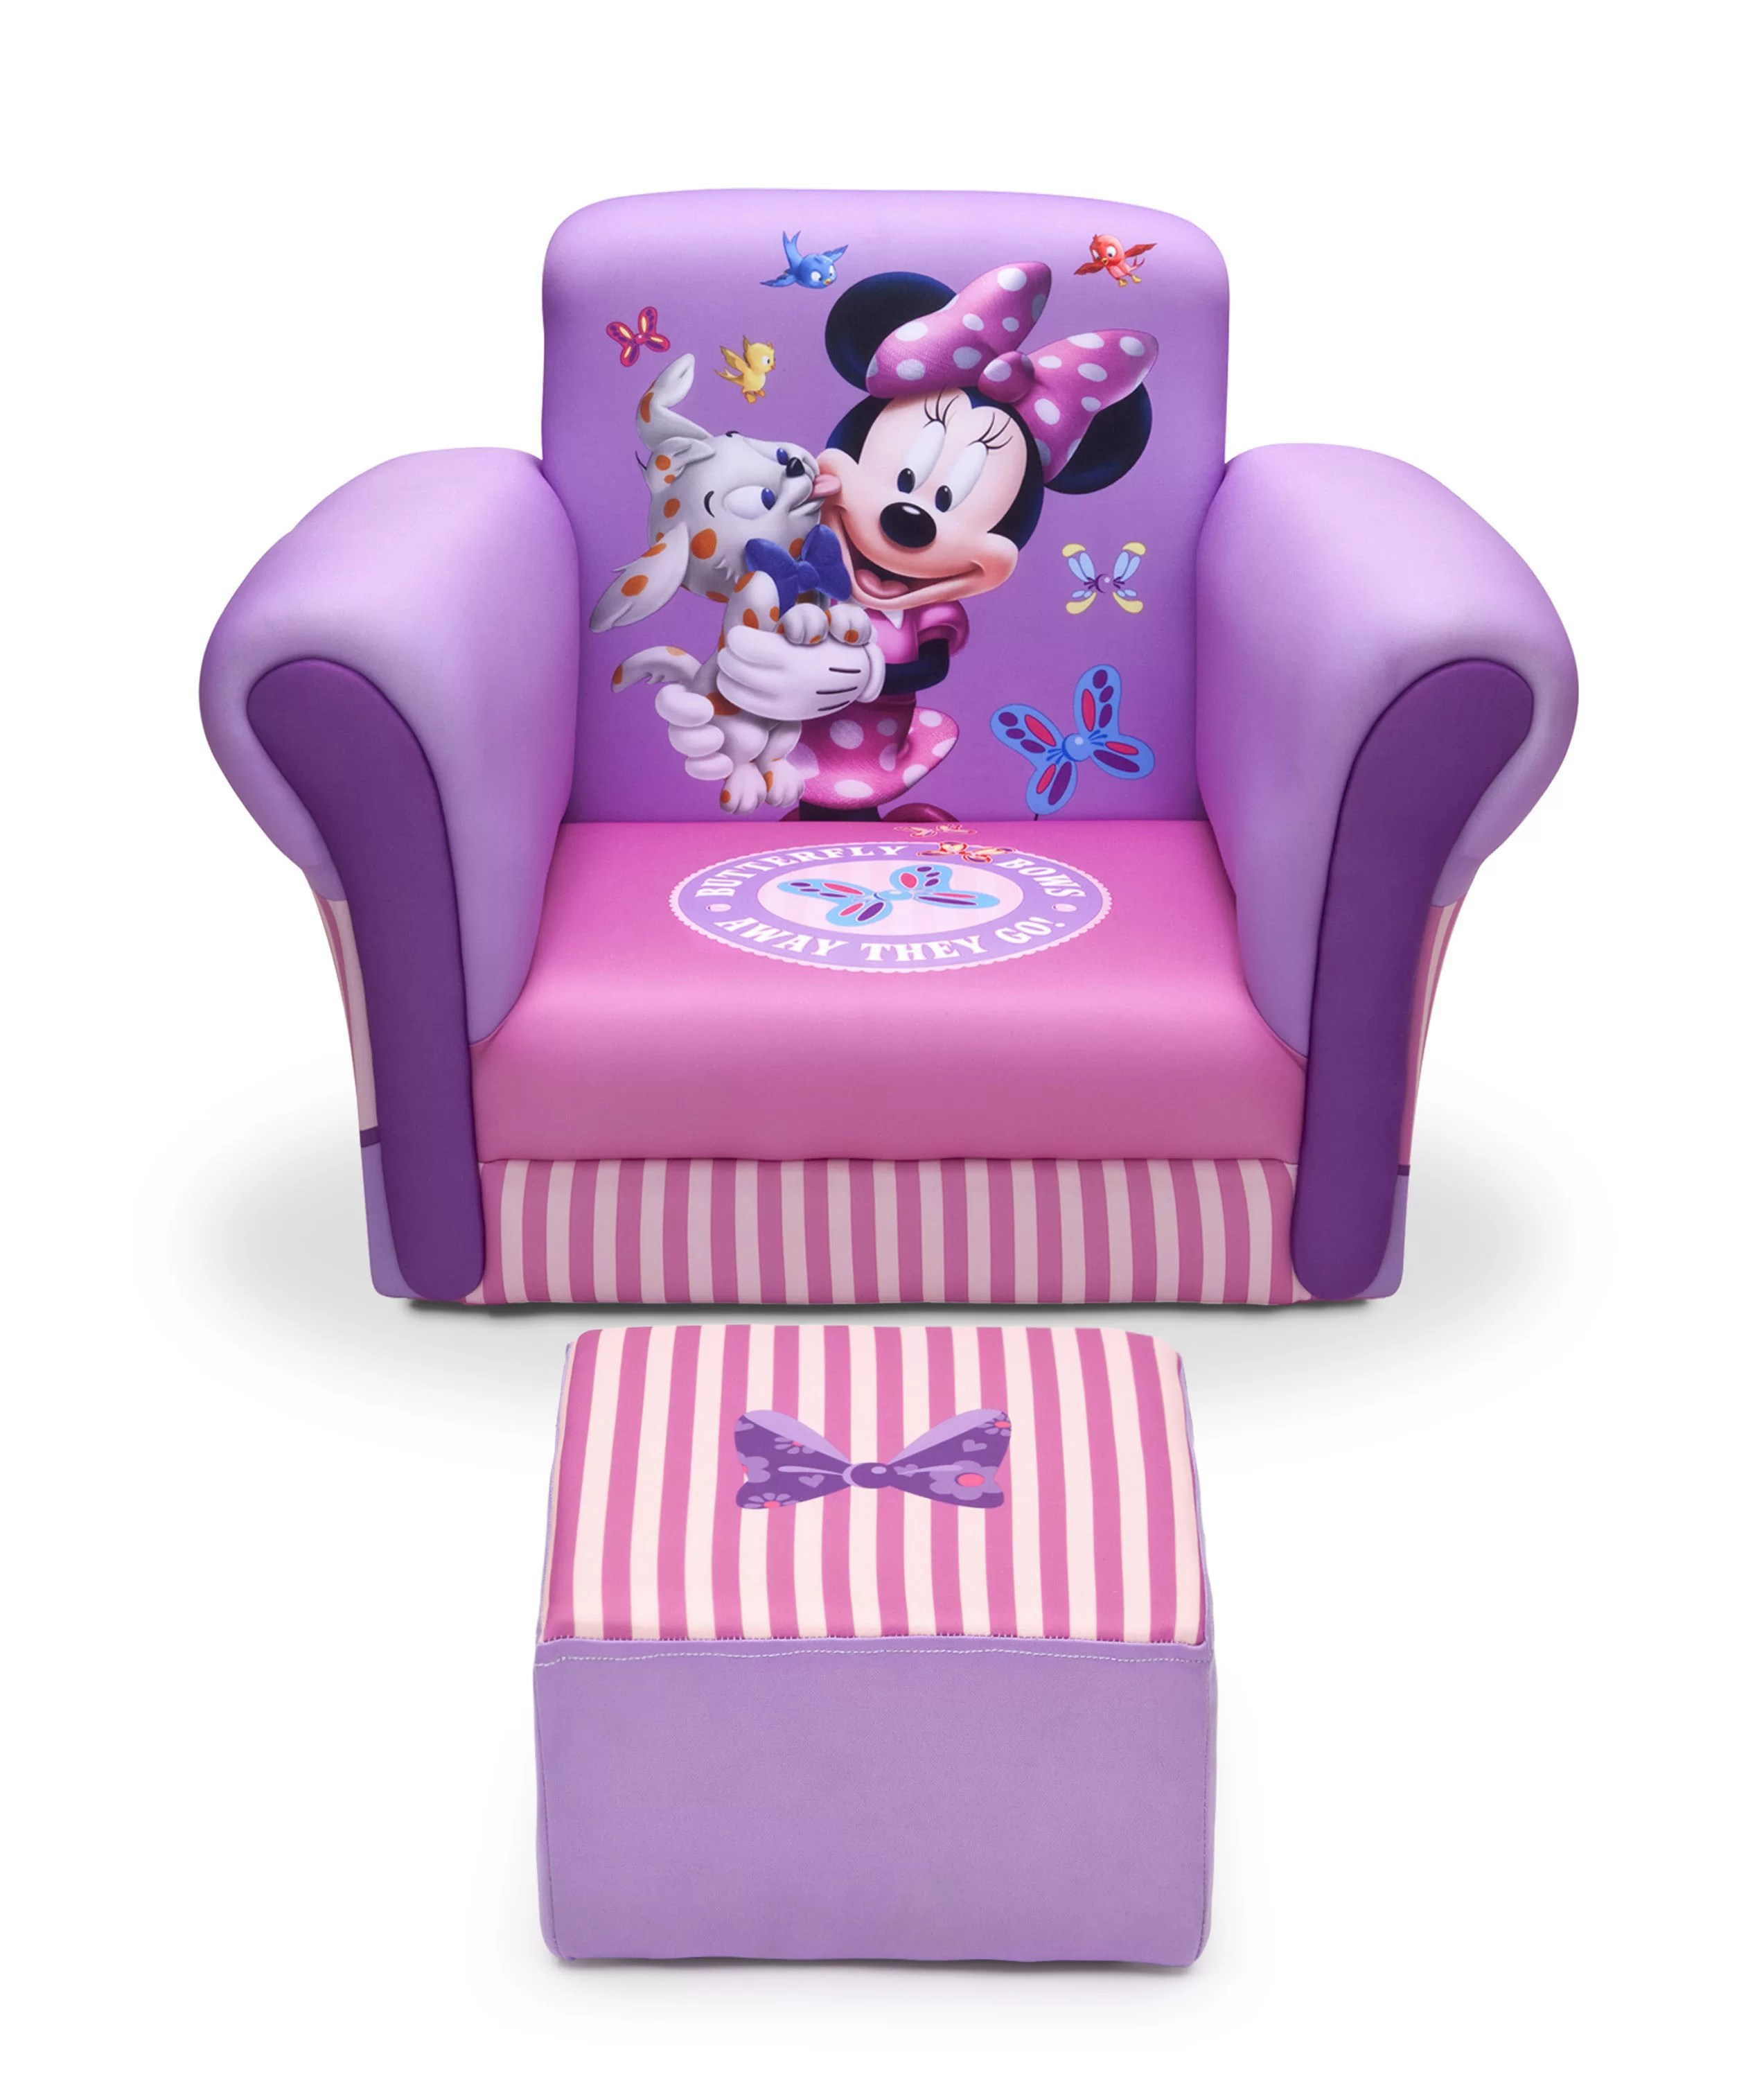 Upholstered Children's Chairs Minnie Mouse Kids Chair And Ottoman